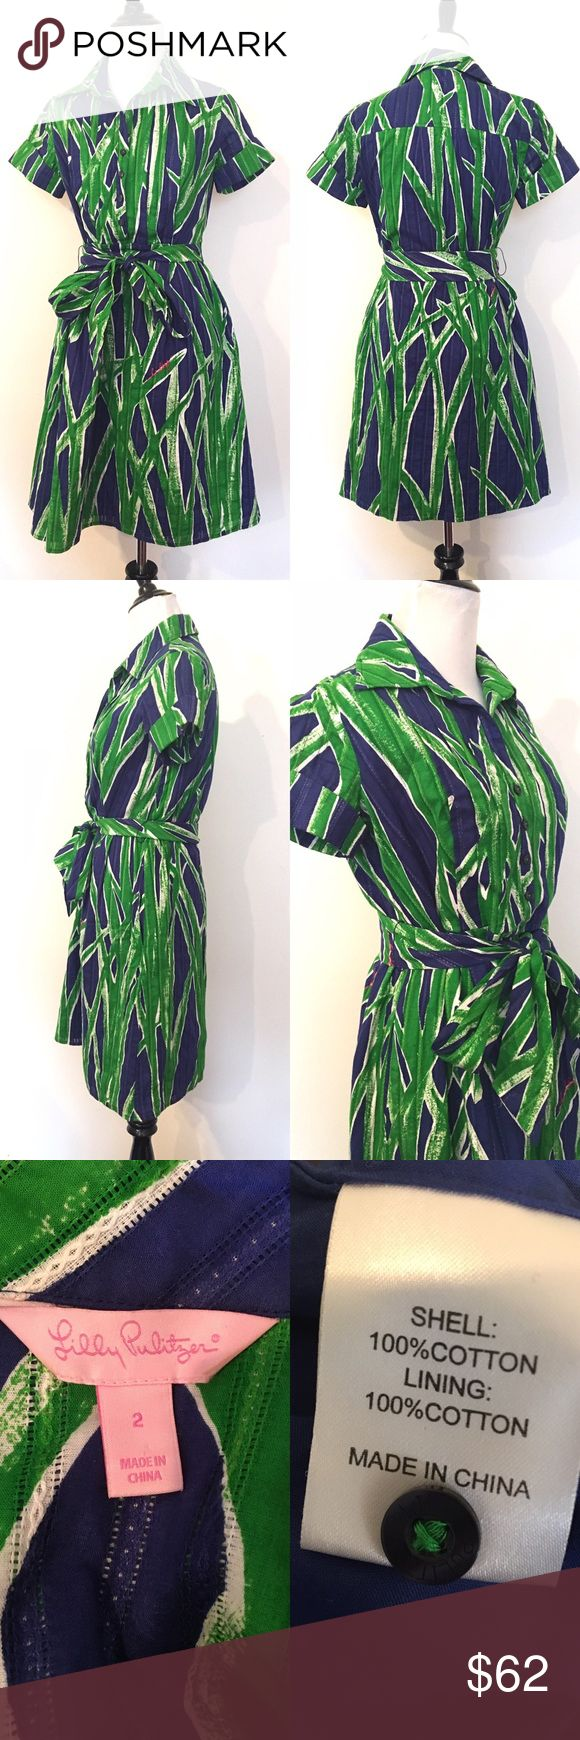 """Lilly Pulitzer Sz 2 Faux Wrap dress button down Gorgeous !!! What a find !!!!  There is just not enough room in my little  NYC closet!   The fabric is gorgeous - there is a lacy look to it with strips of little eyelet pattern up and down (hard to explain! Look at pics :)  Button down to the chest level  Large pointed collar  Full skirt  The word Lilly is printed in pink in the fabric   Measurements:  Sleeves : 6""""  Shoulders 4""""  Pit to pit : 19""""  Waist : 15.5""""  Collar to hem: 36""""   Any…"""